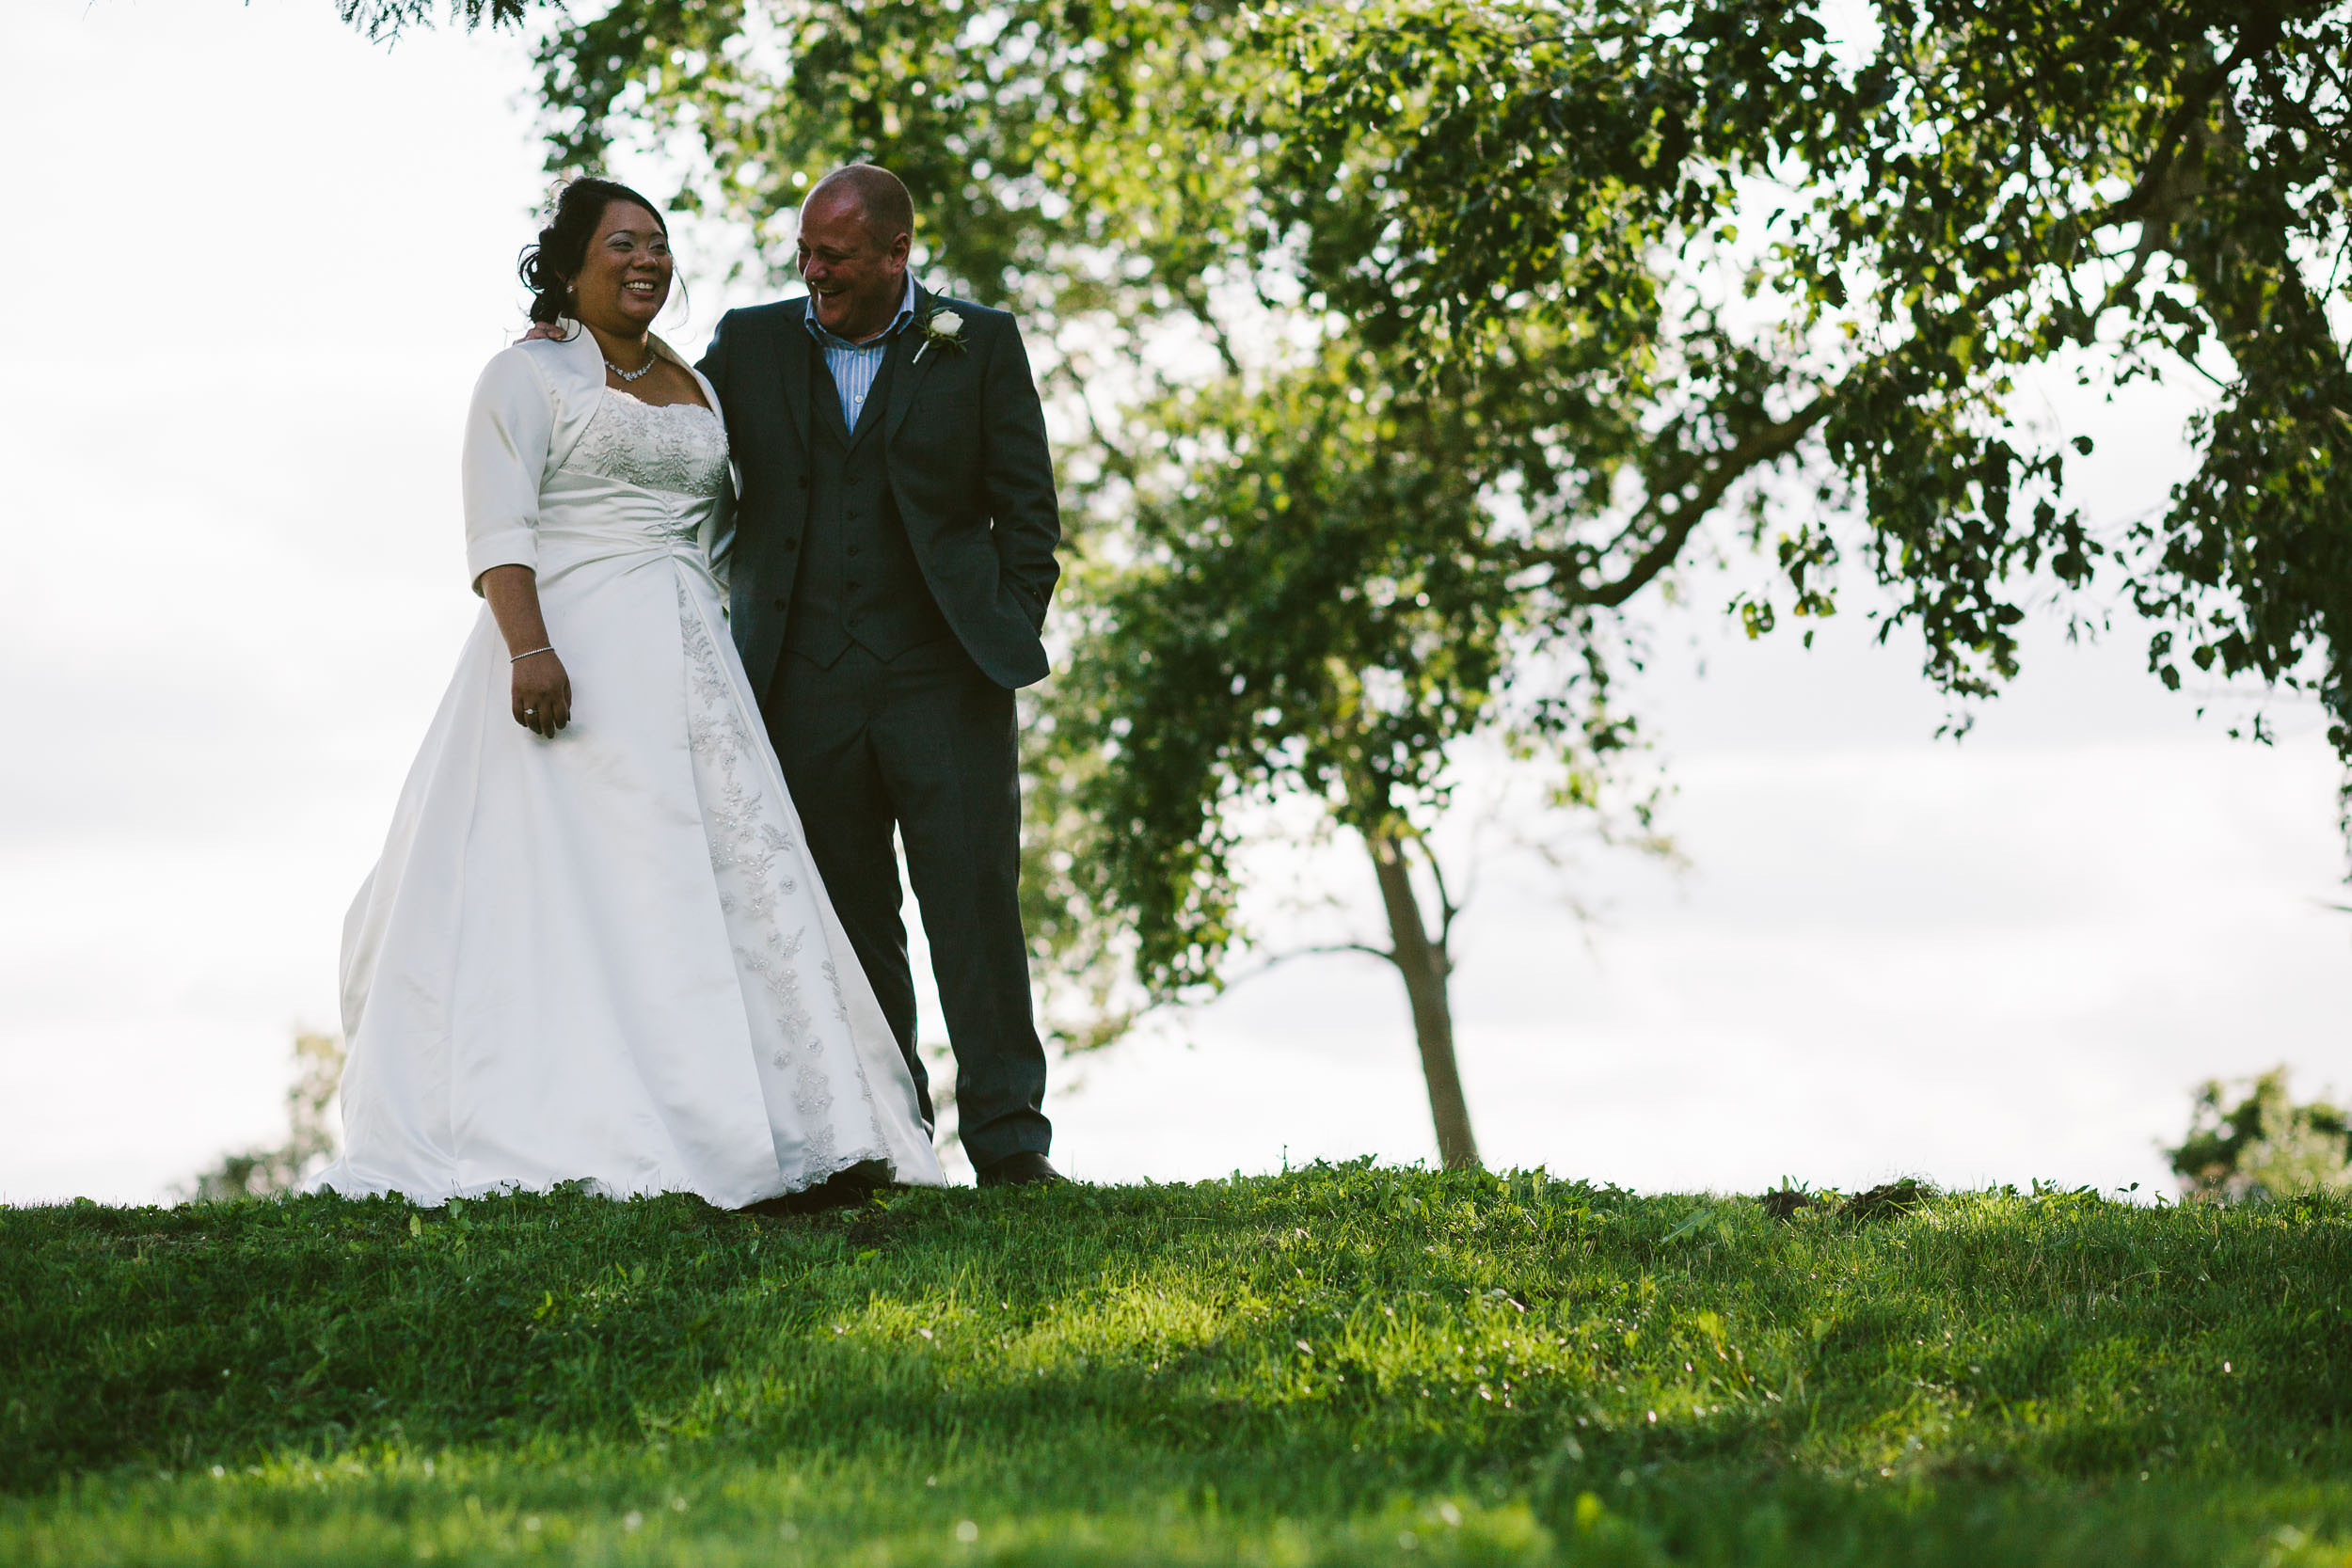 Bride and groom laugh while walking outdoors